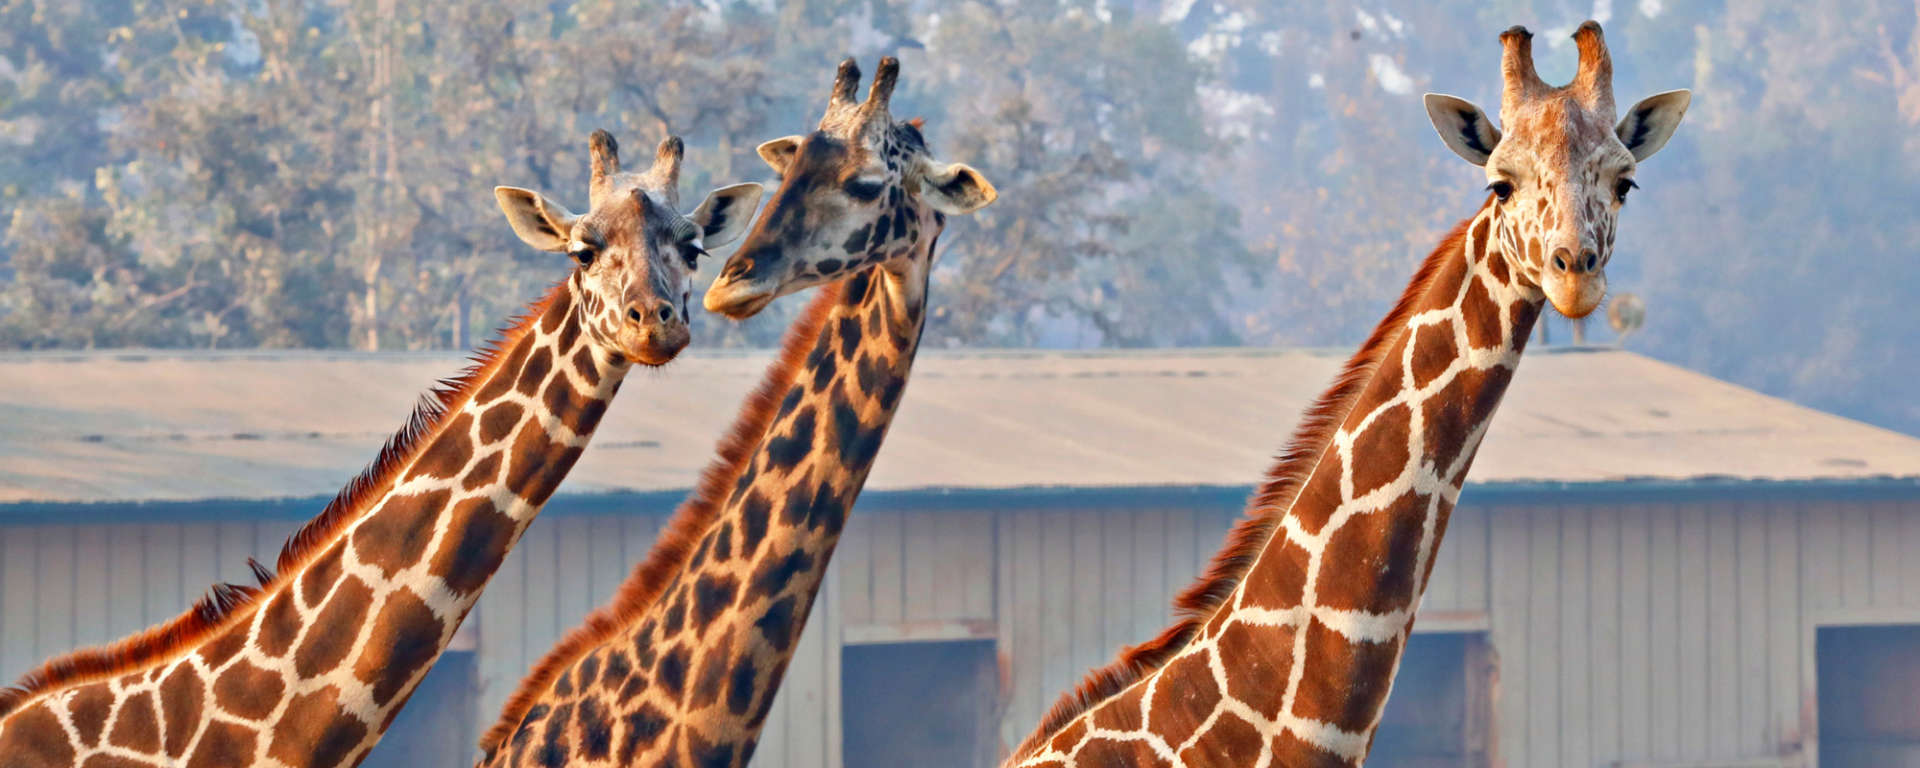 Giraffes by Will Bucquoy